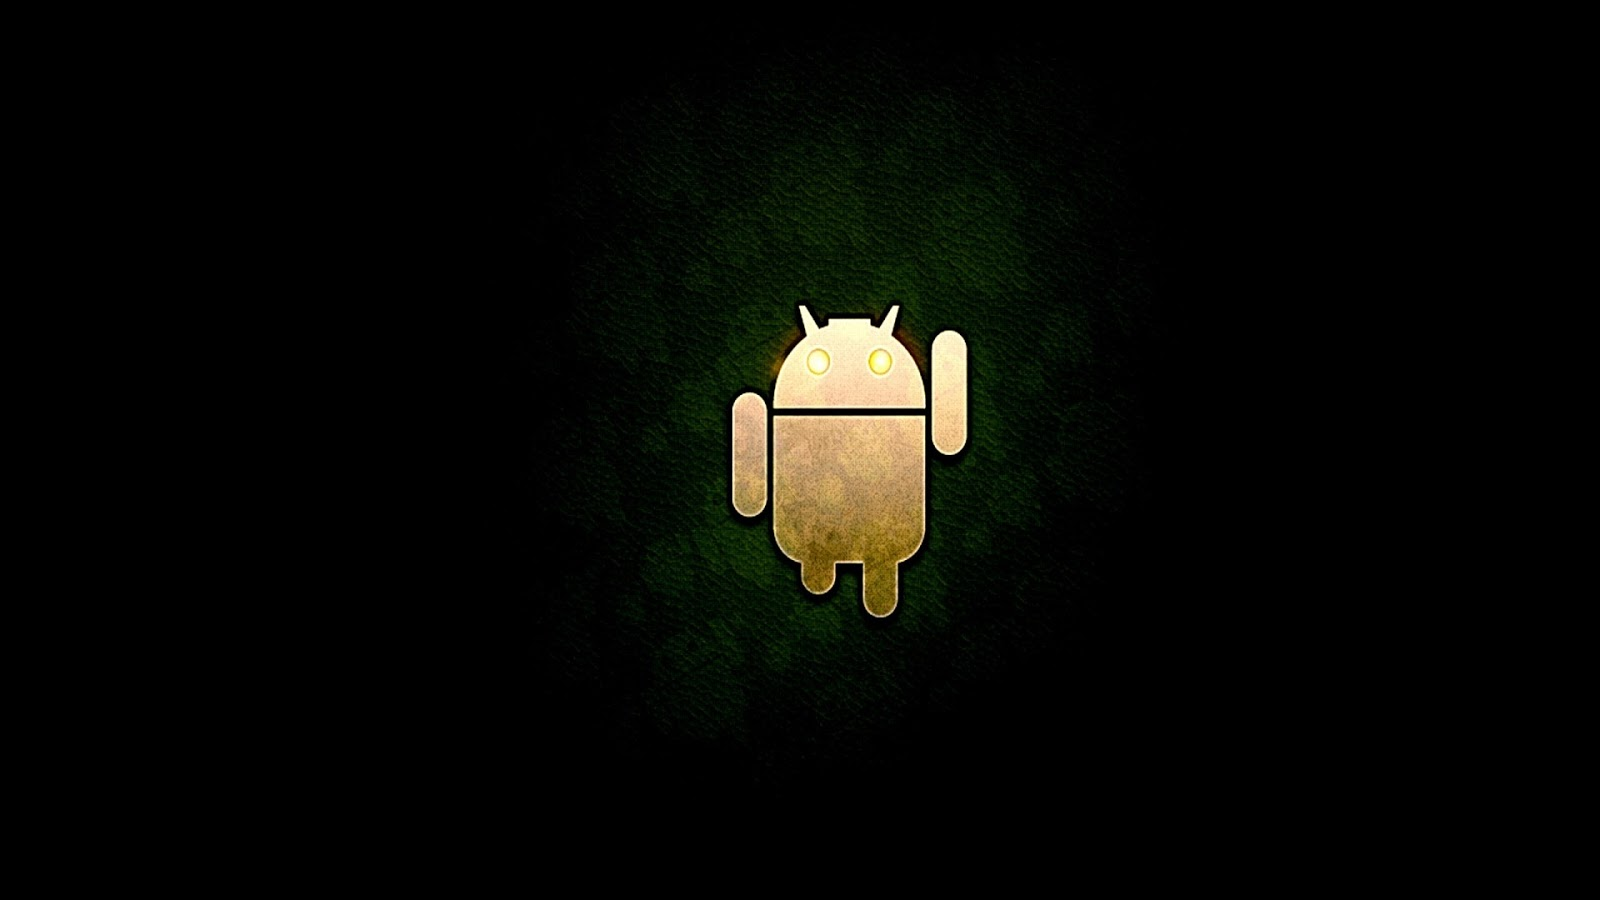 Android Robot Download 1920x1080 1600x900